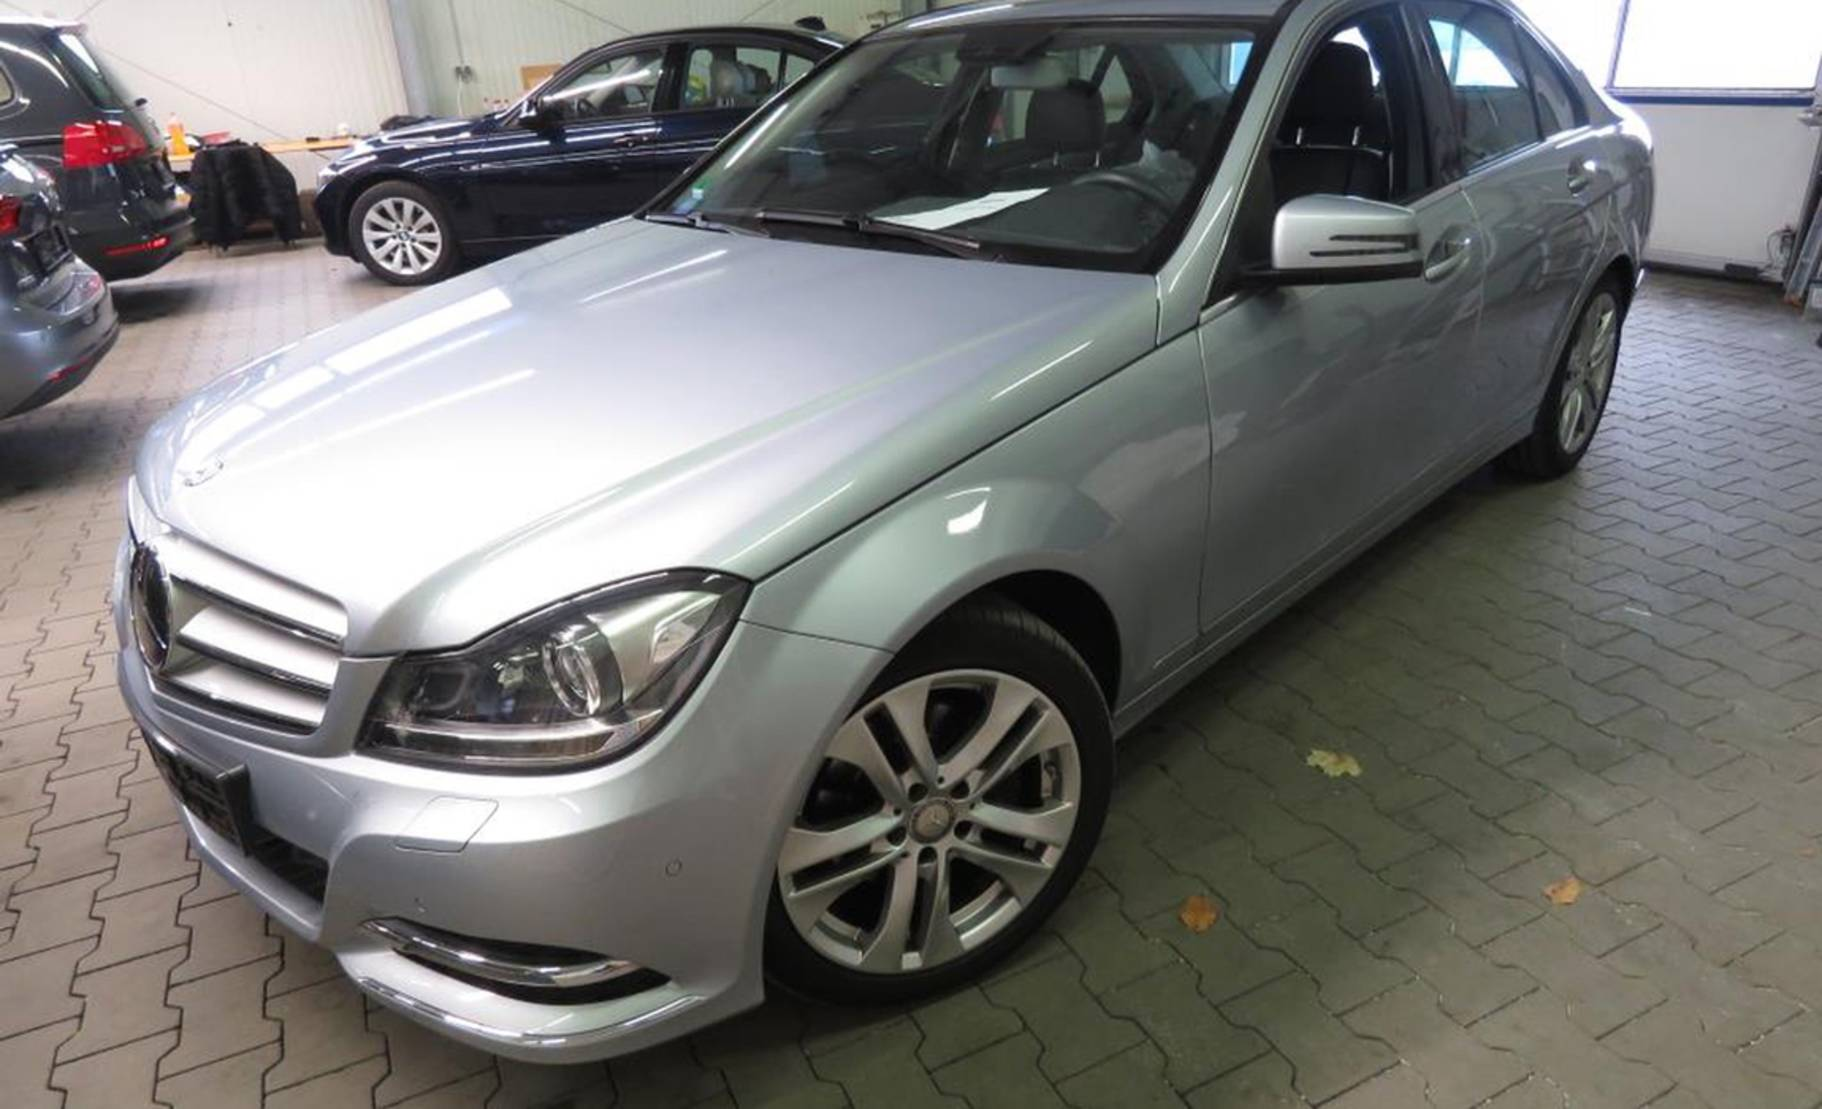 Mercedes-Benz C-Klasse 200 (BlueEFFICIENCY) 7G-TRONIC, Avantgarde (505574) detail1